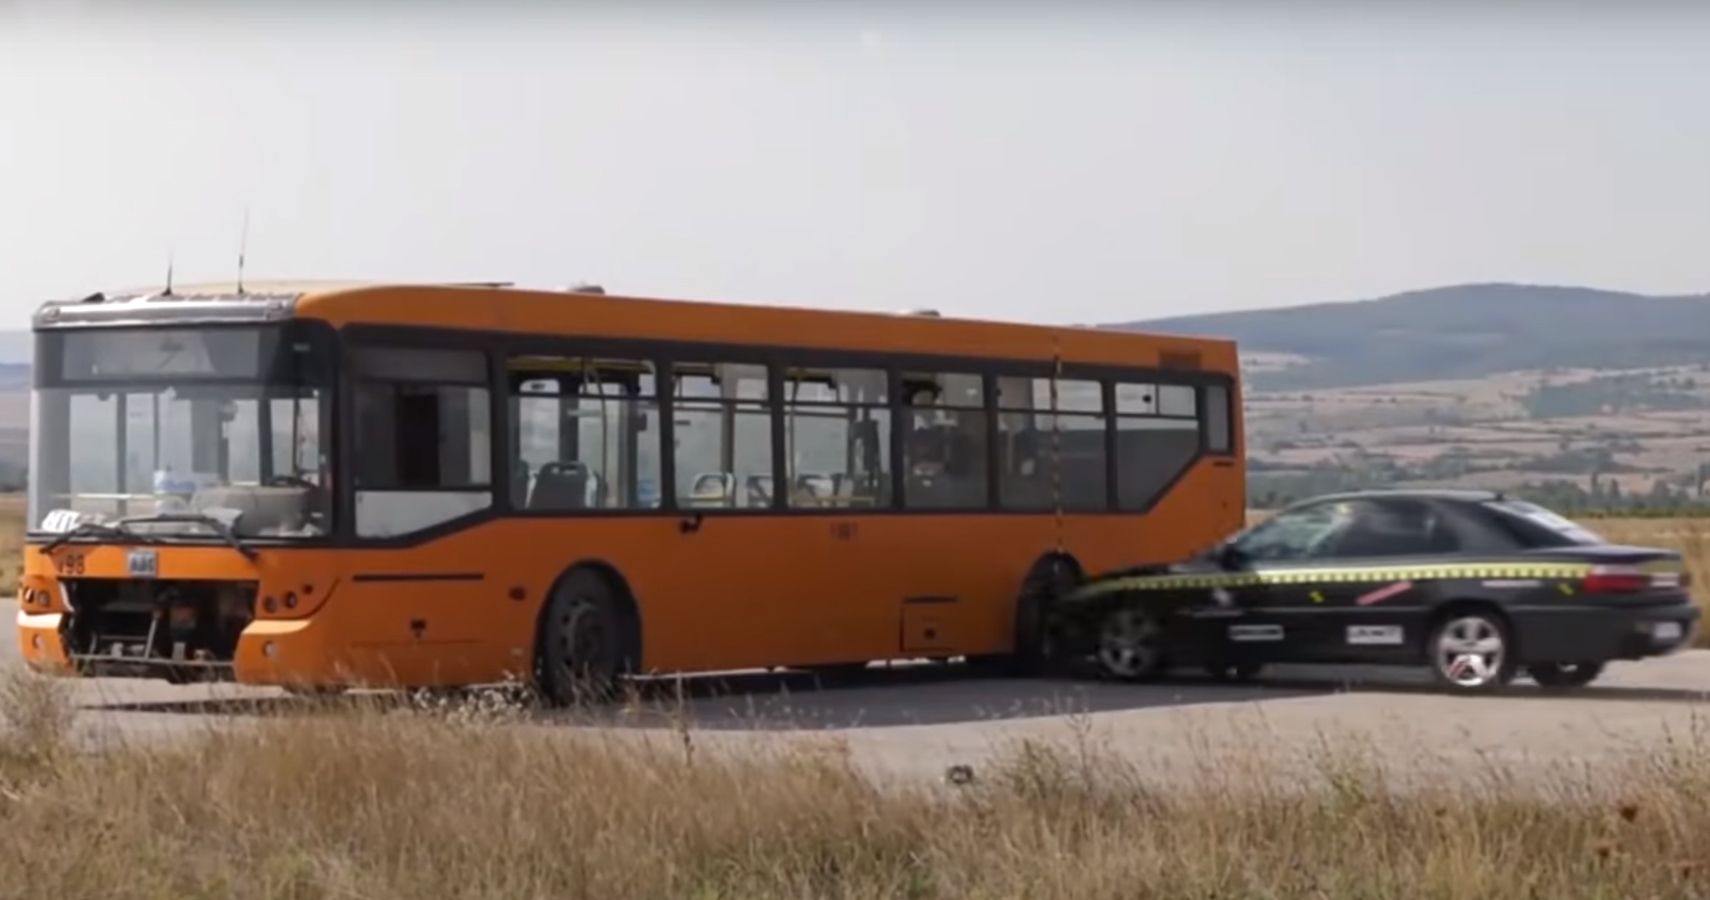 Watch The Impact This Driverless Sedan Makes Smashing Into A Bus At 129 MPH In Staged Collision